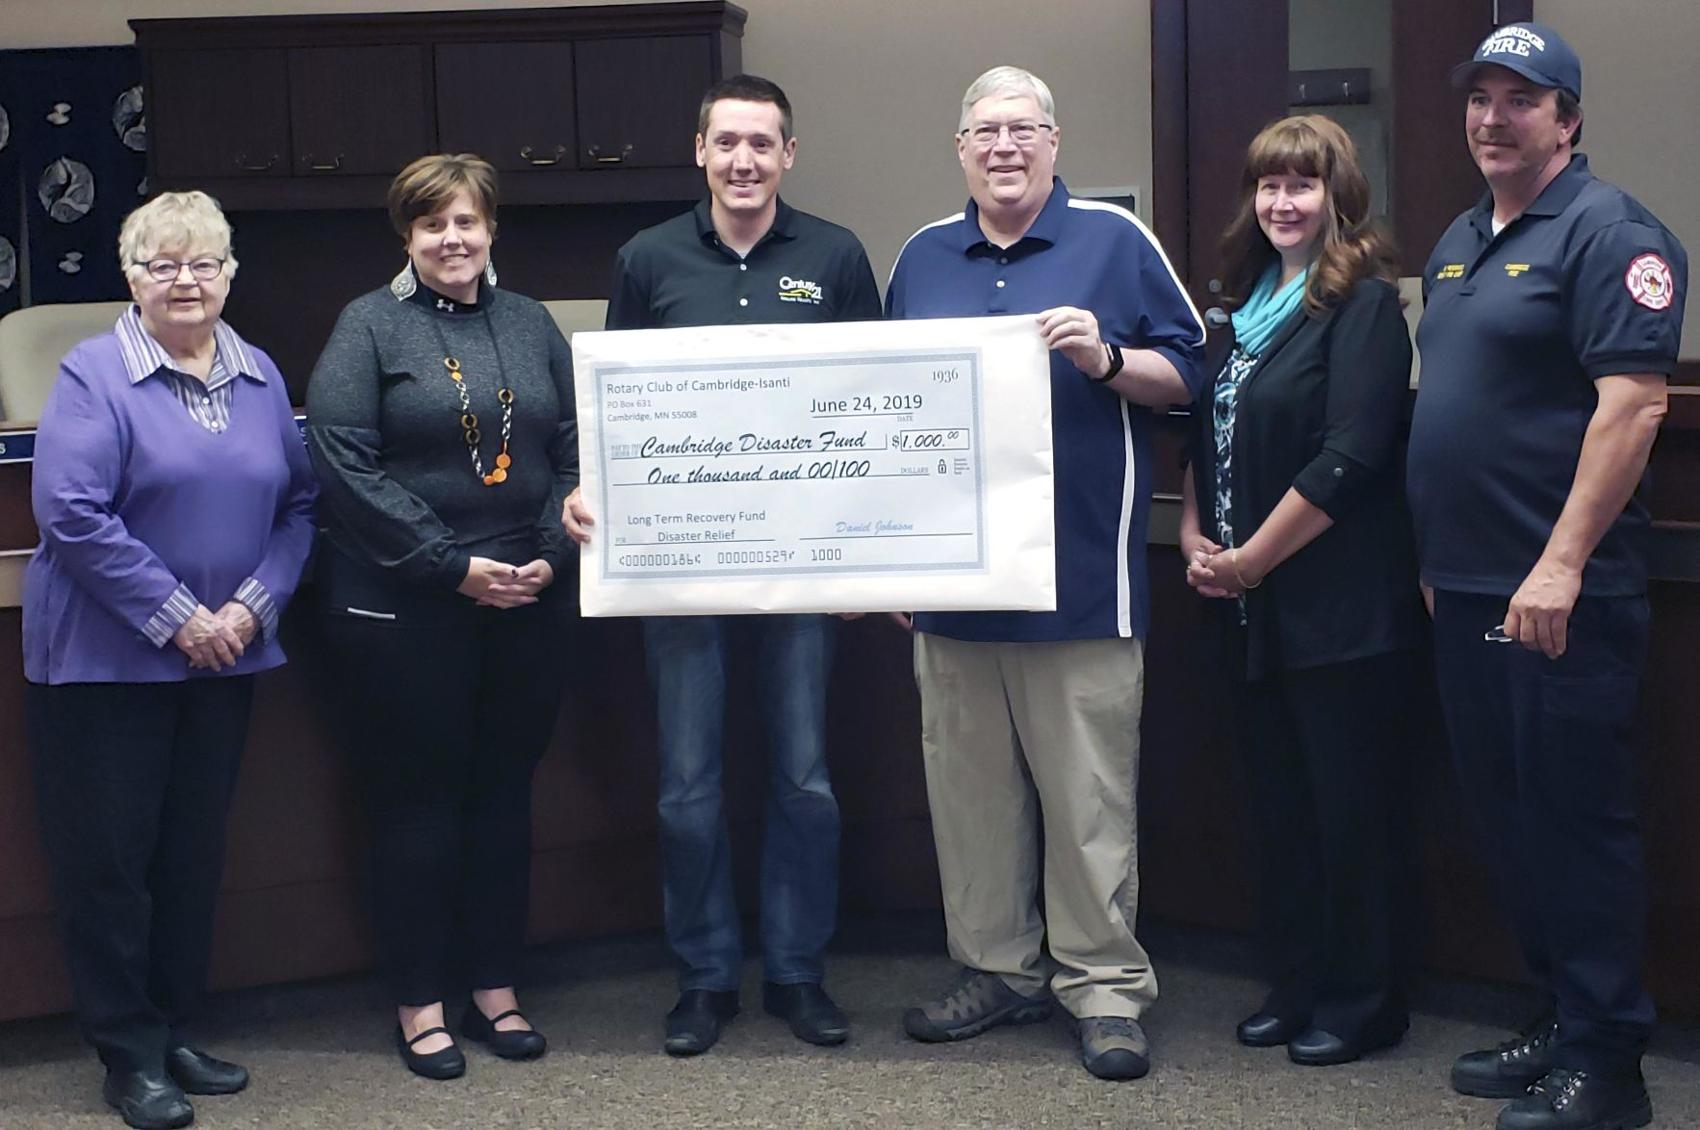 City Council accepting a donation check